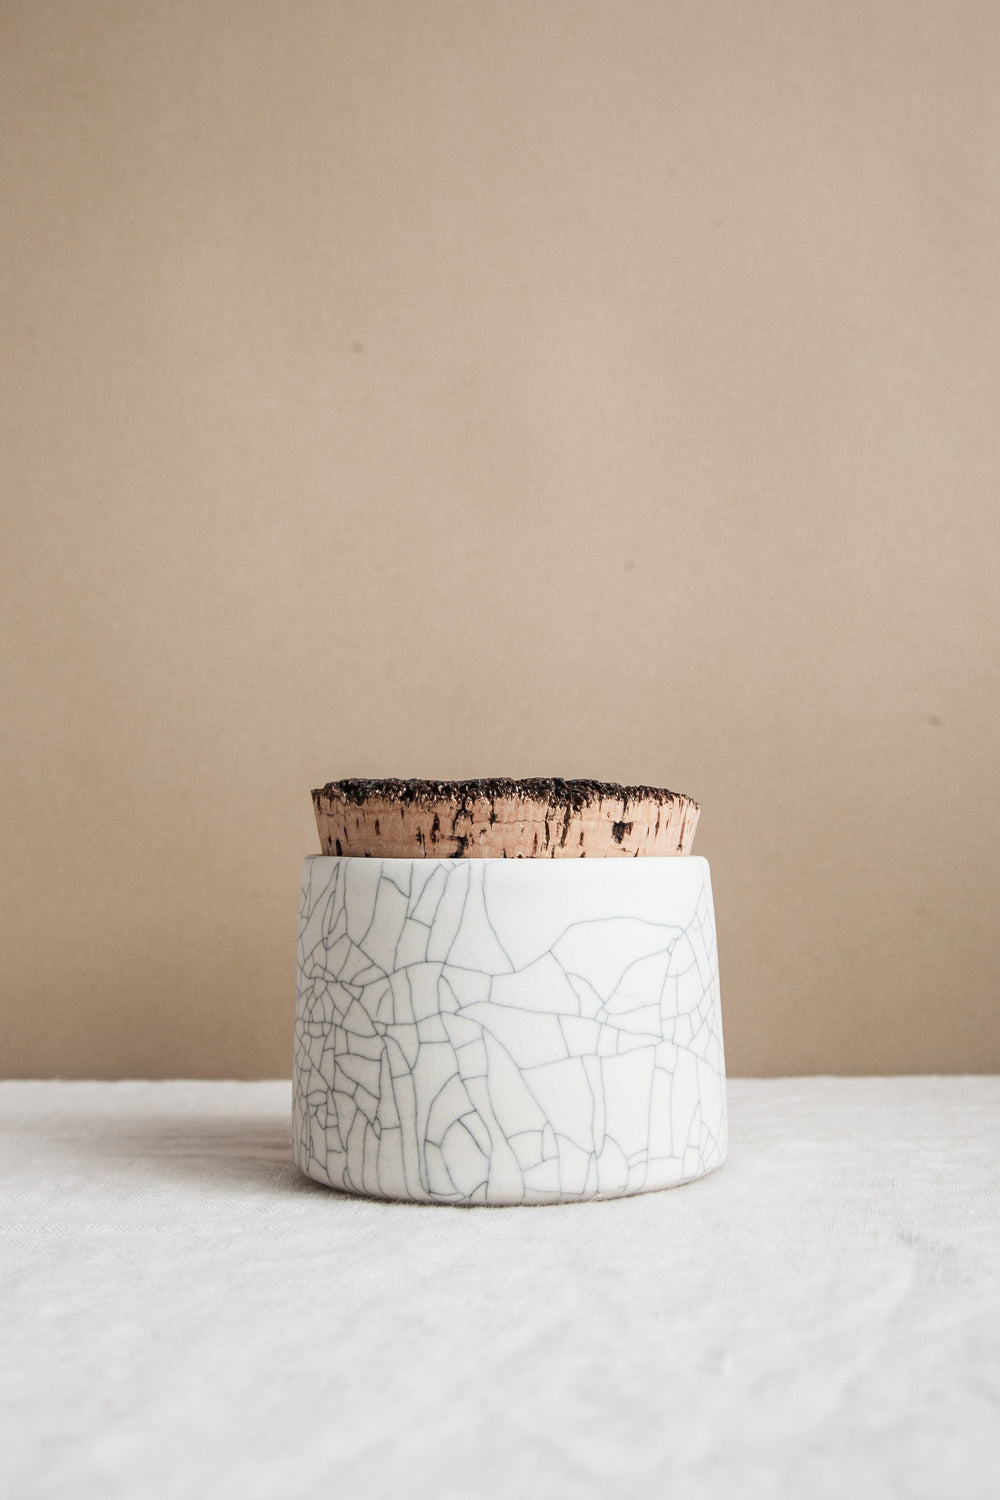 Sugar Jar / Crackle